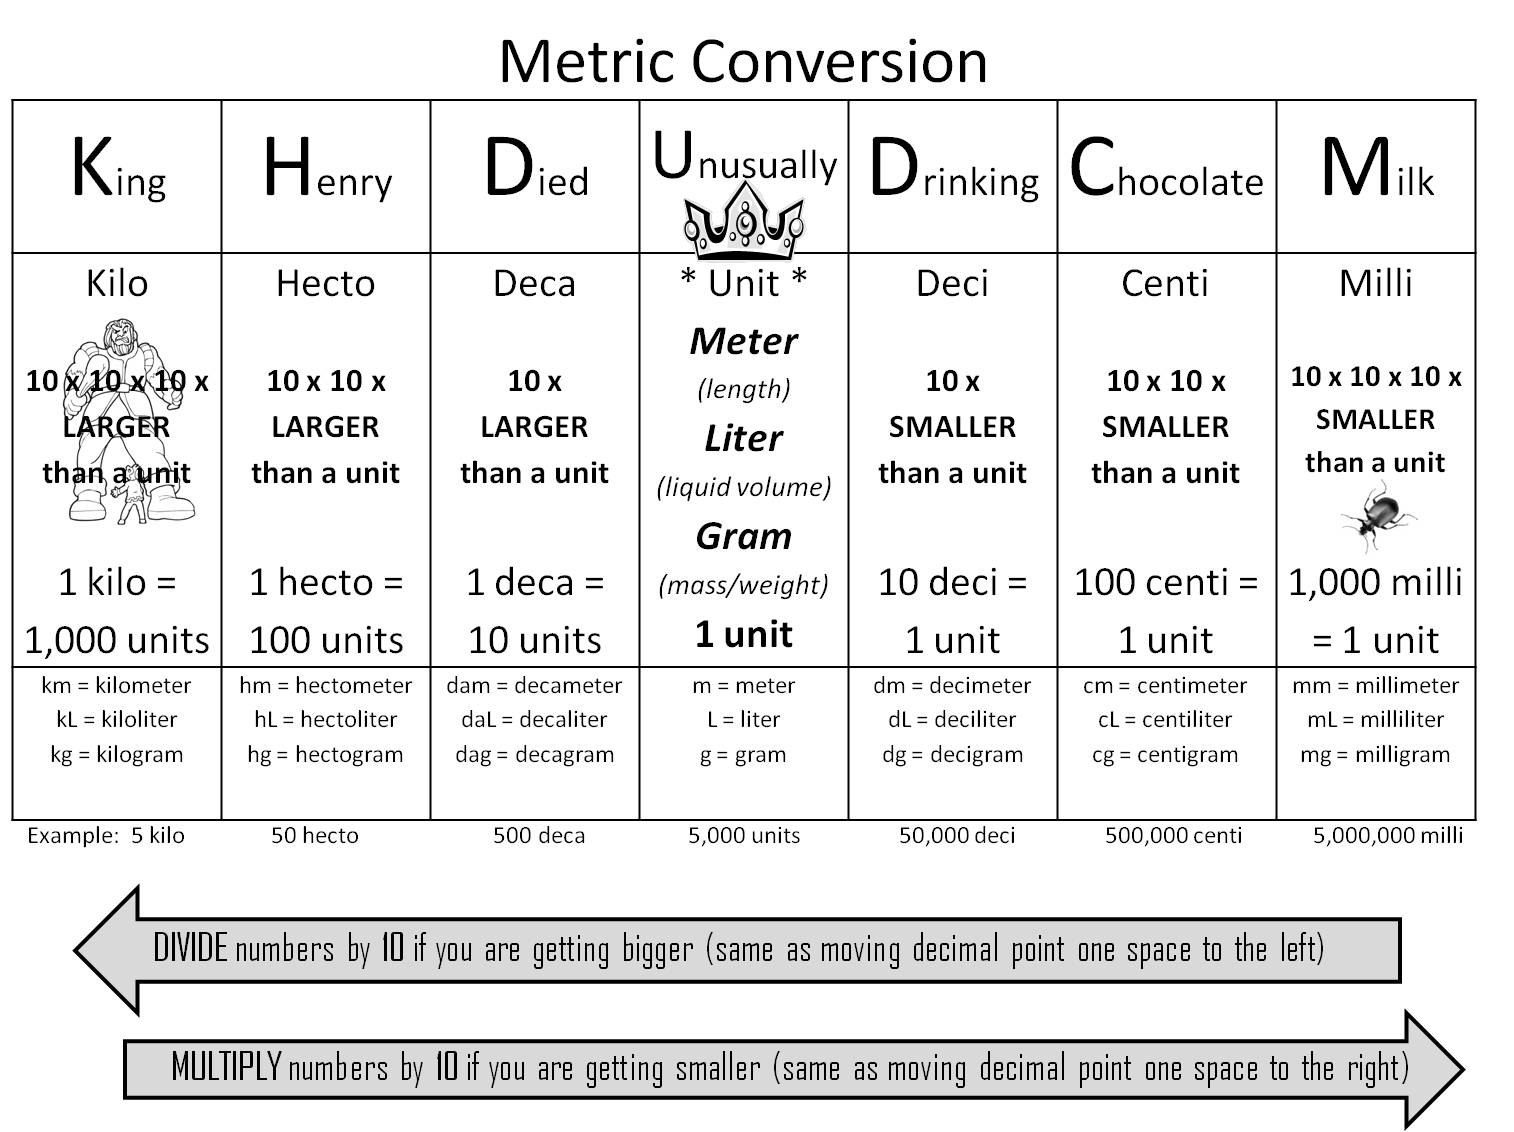 metric measurement chart: Strong armor math metric conversion trick